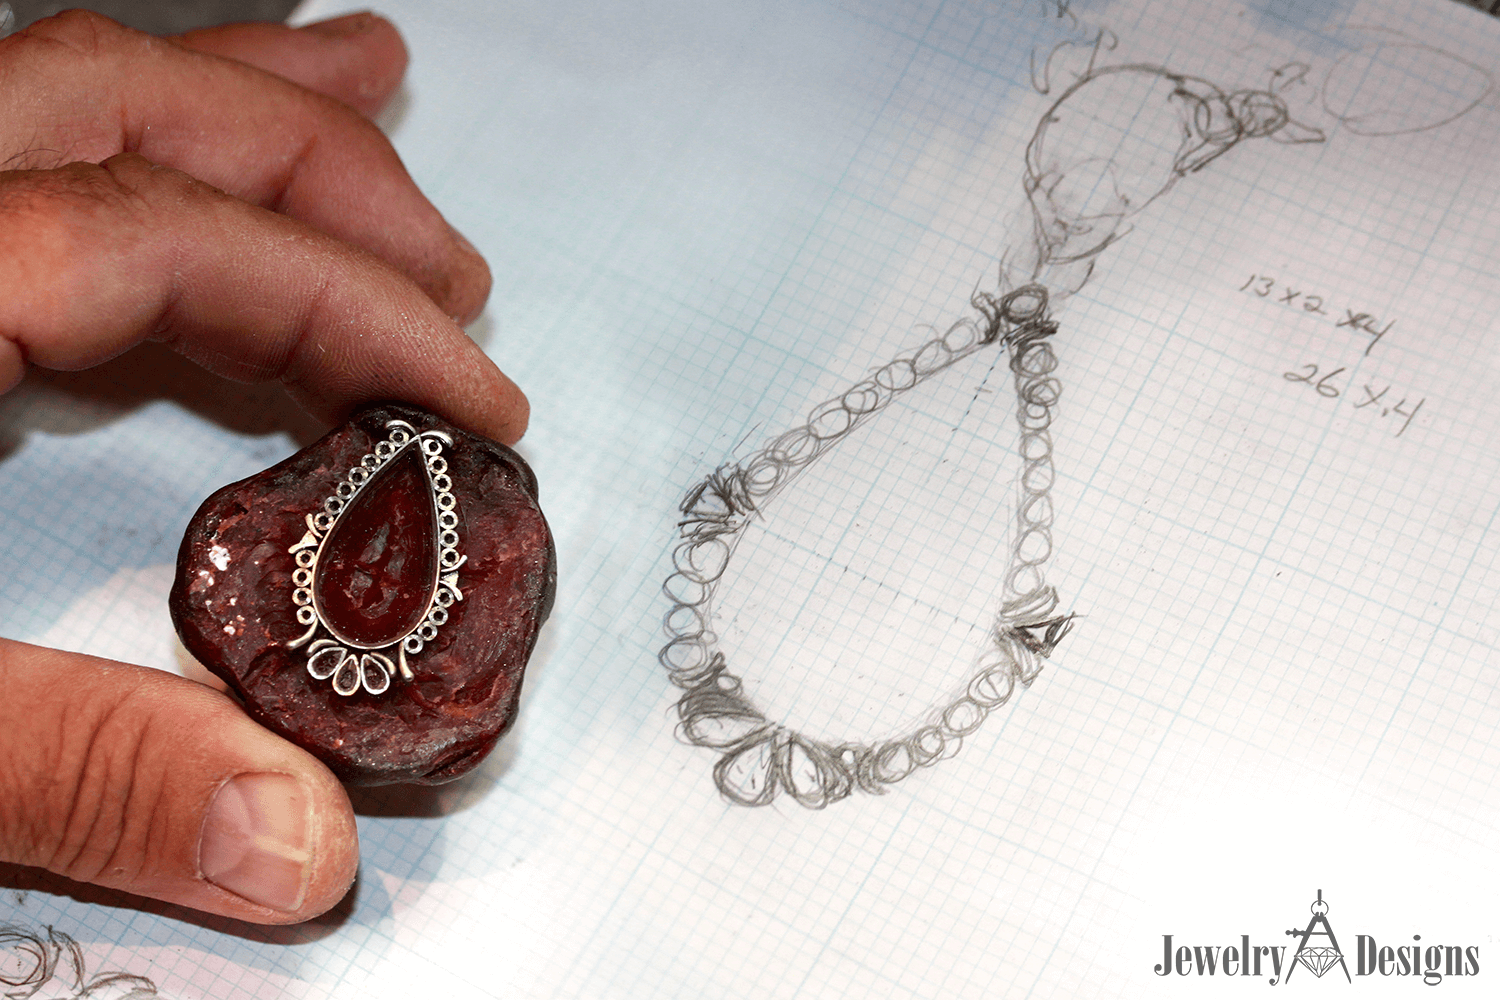 Designing Jewelry Jewelry Making Process